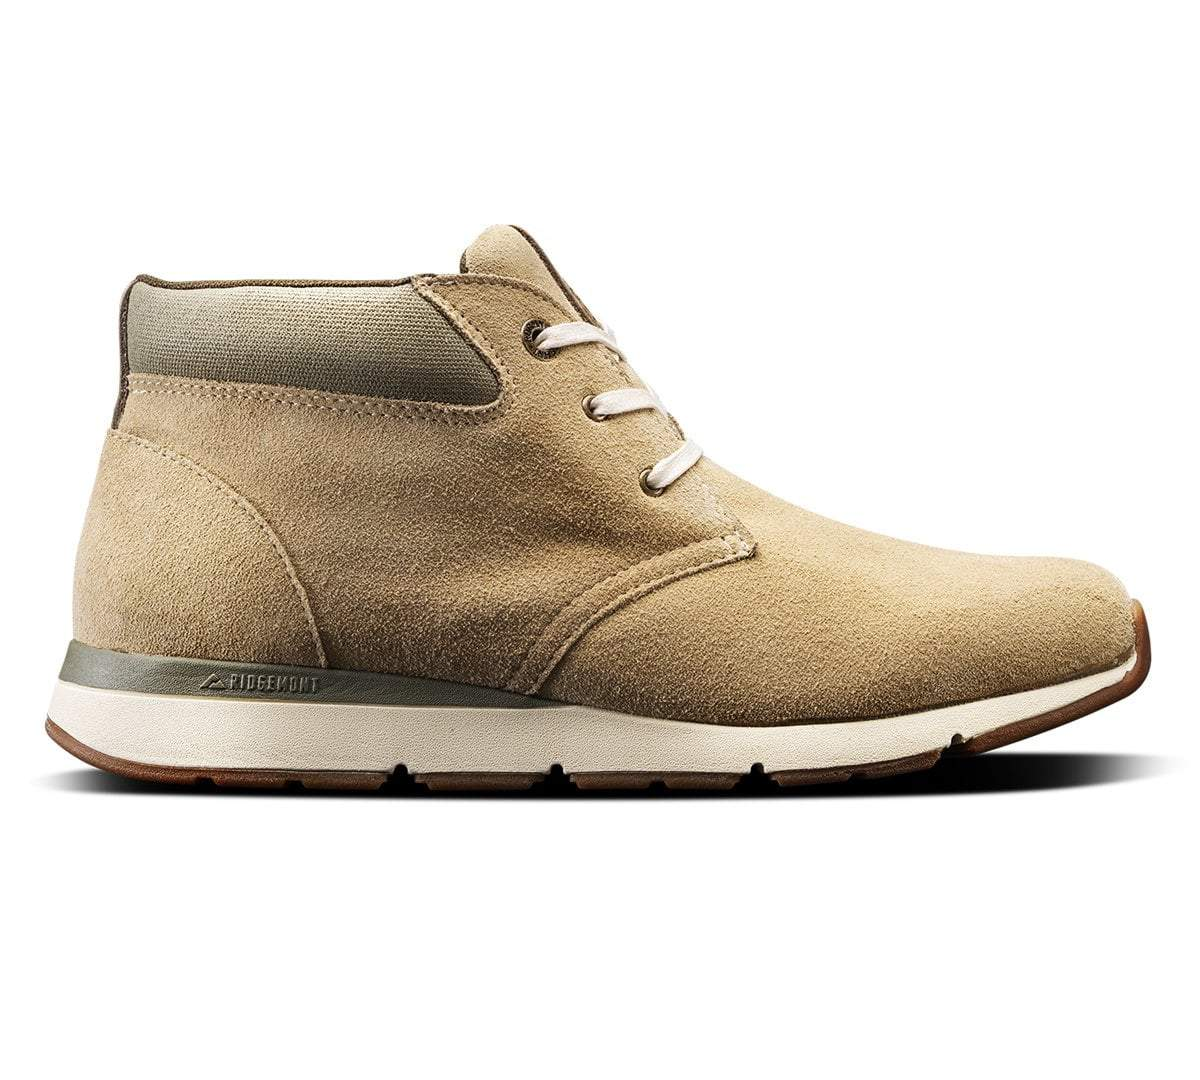 Camino - Wheat/Olive - Ridgemont